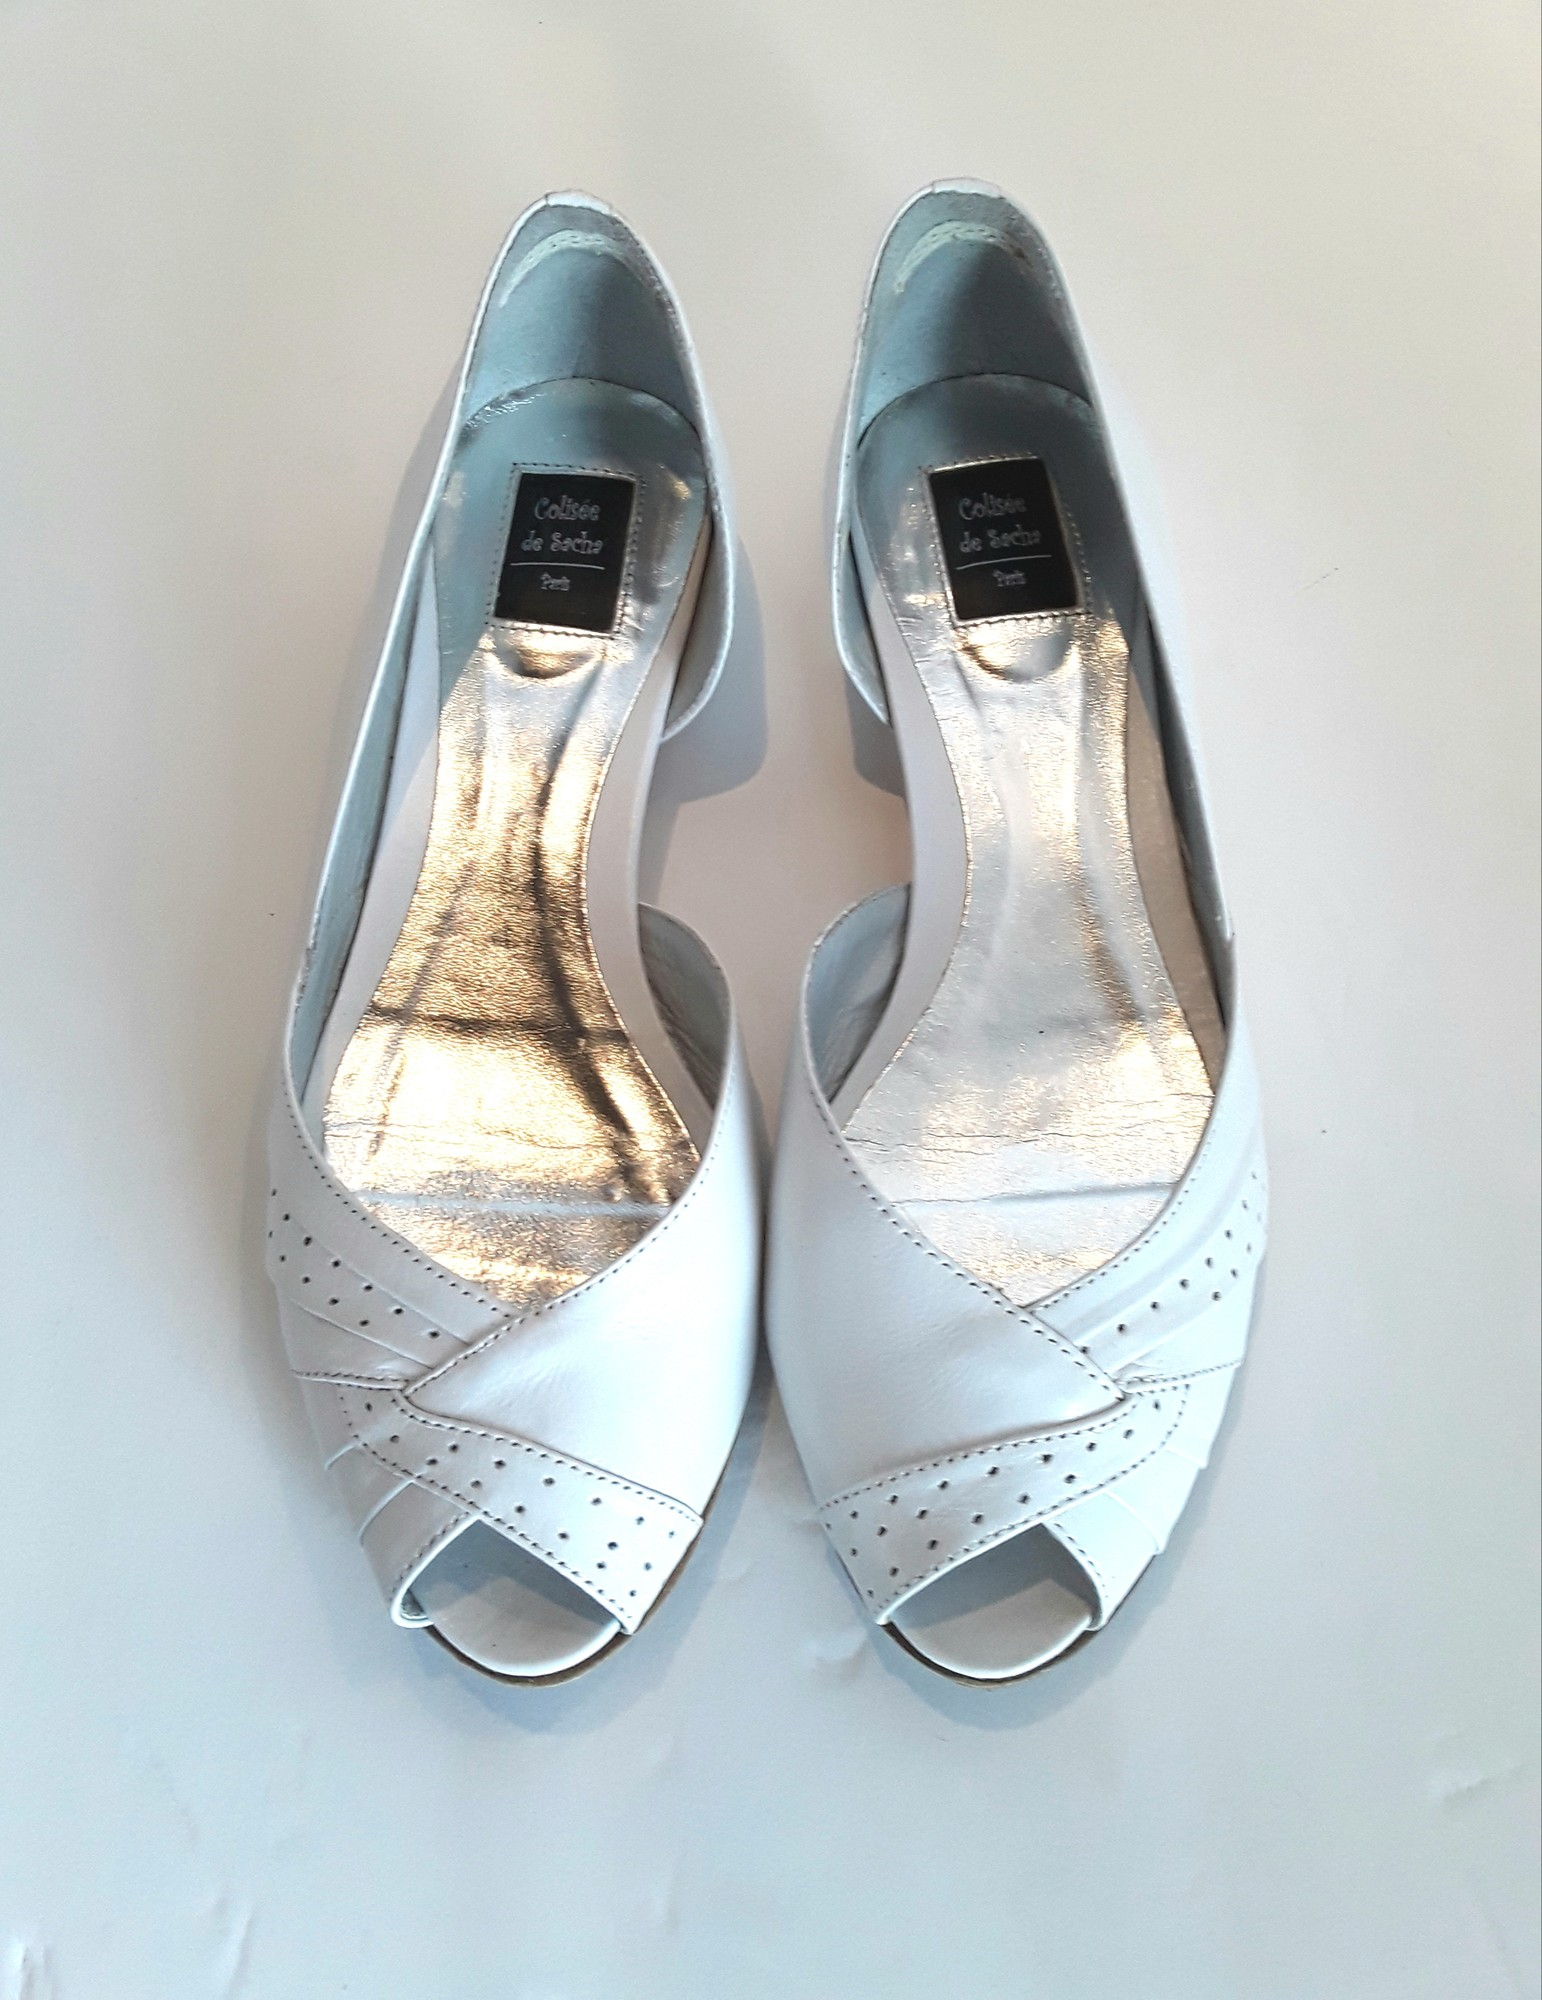 Colisee de Sacha of Paris White Flats, White, Size: 6.5 Beautifully made with silver accent on the heels.